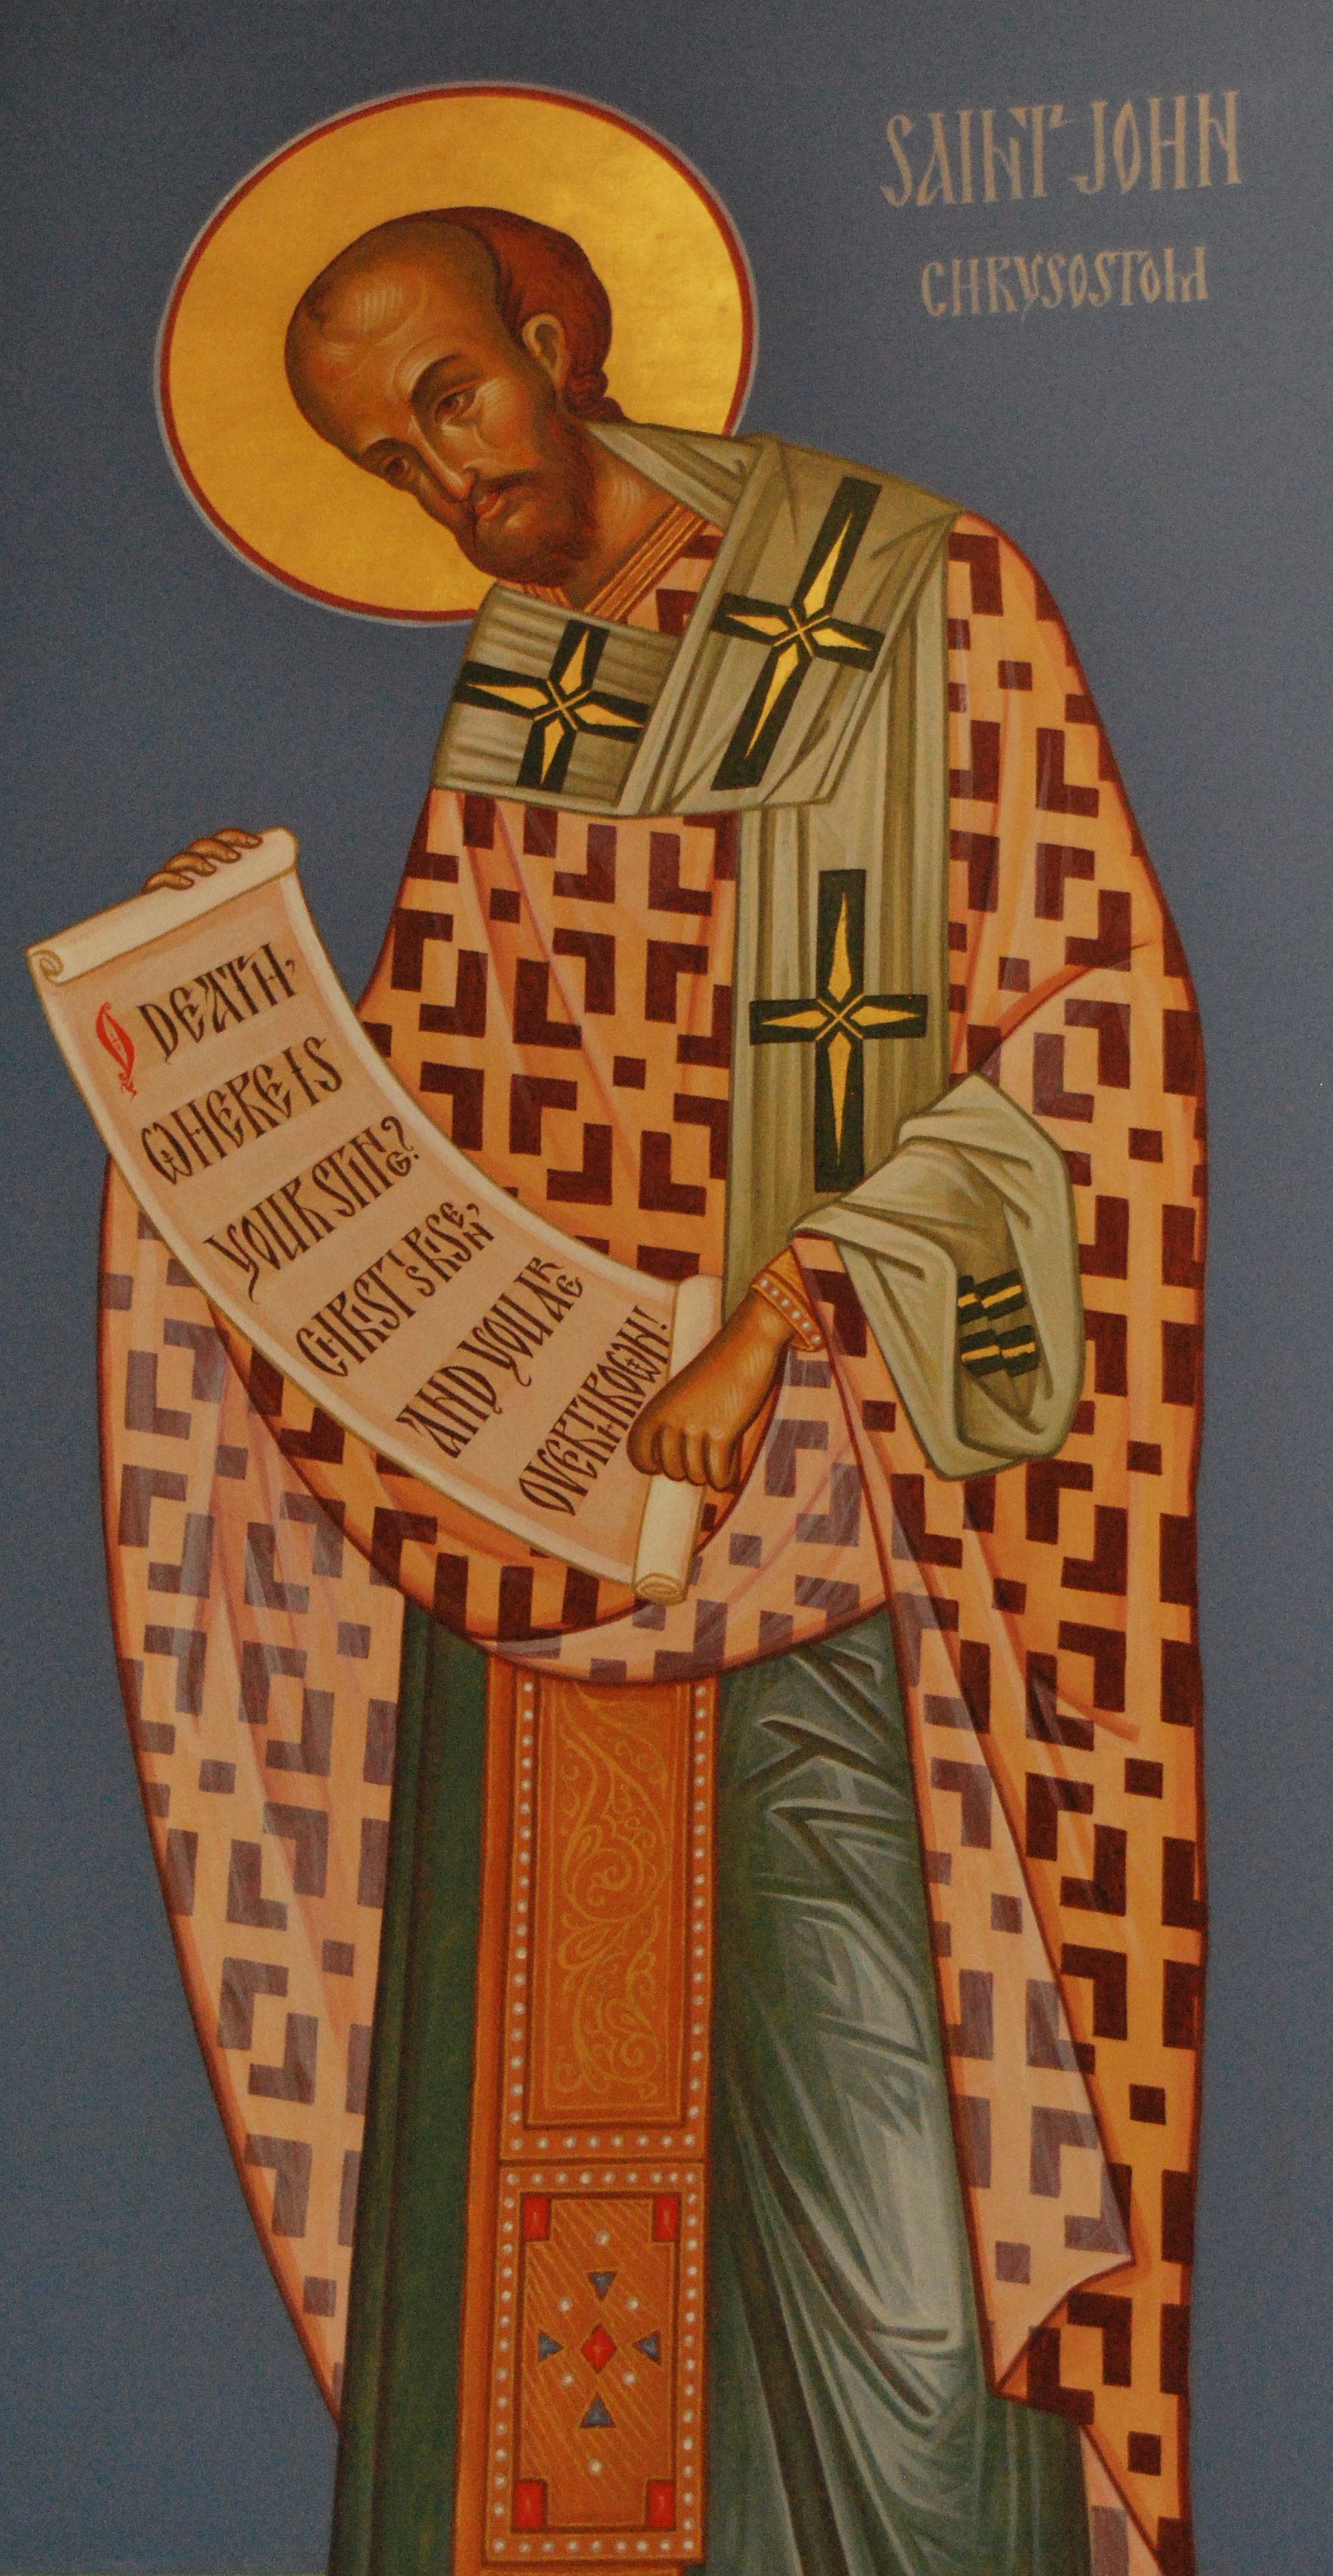 File:John Chrysostom, St. Paul the Apostle Orthodox Church, Dayton,  Ohio.jpg - Wikimedia Commons